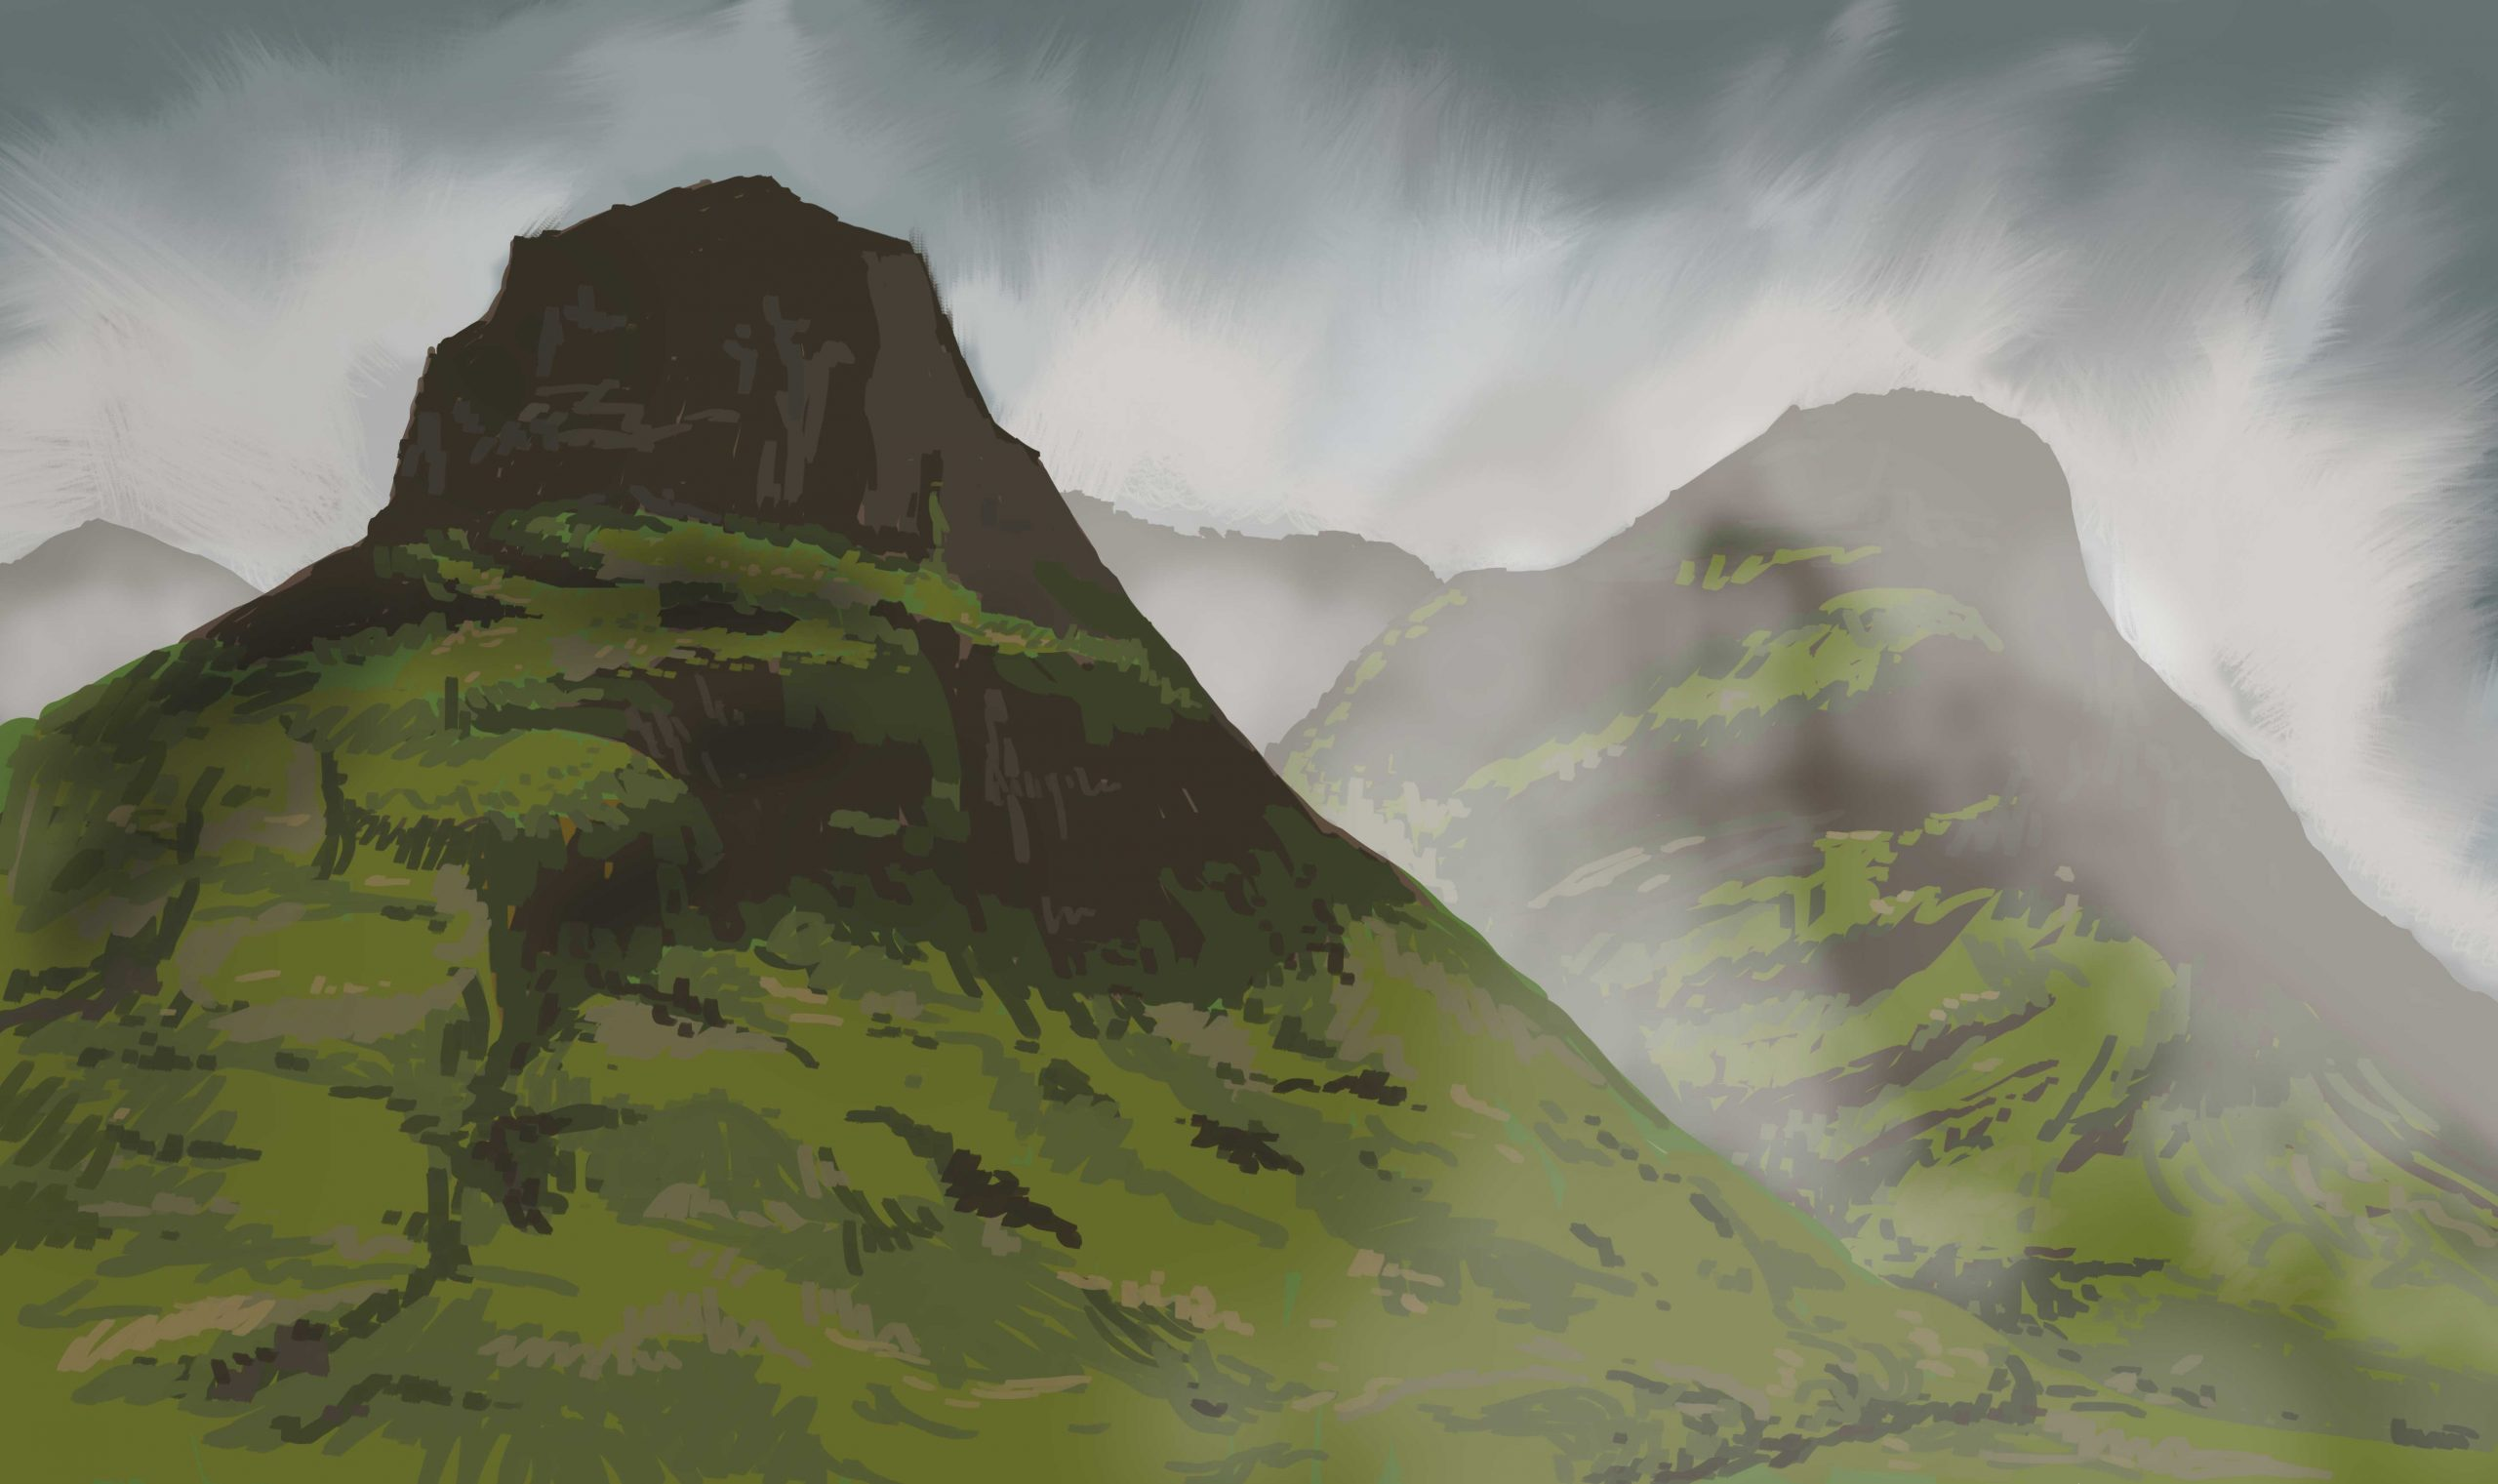 Scottish highlands, digital painting by Lisa Cuthbertson